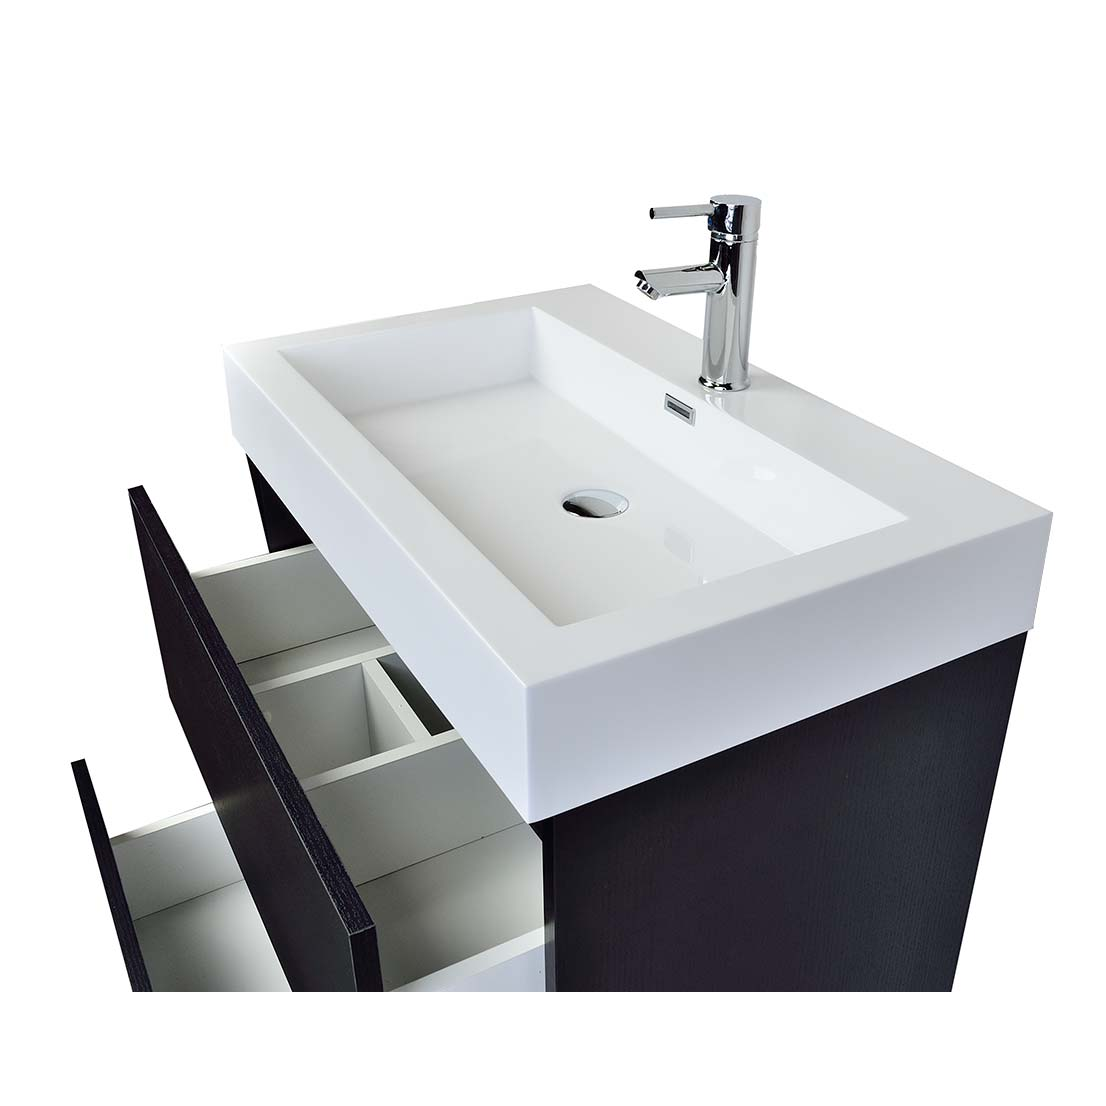 29 5 contemporary bathroom vanity in black optional mirror tn ly750